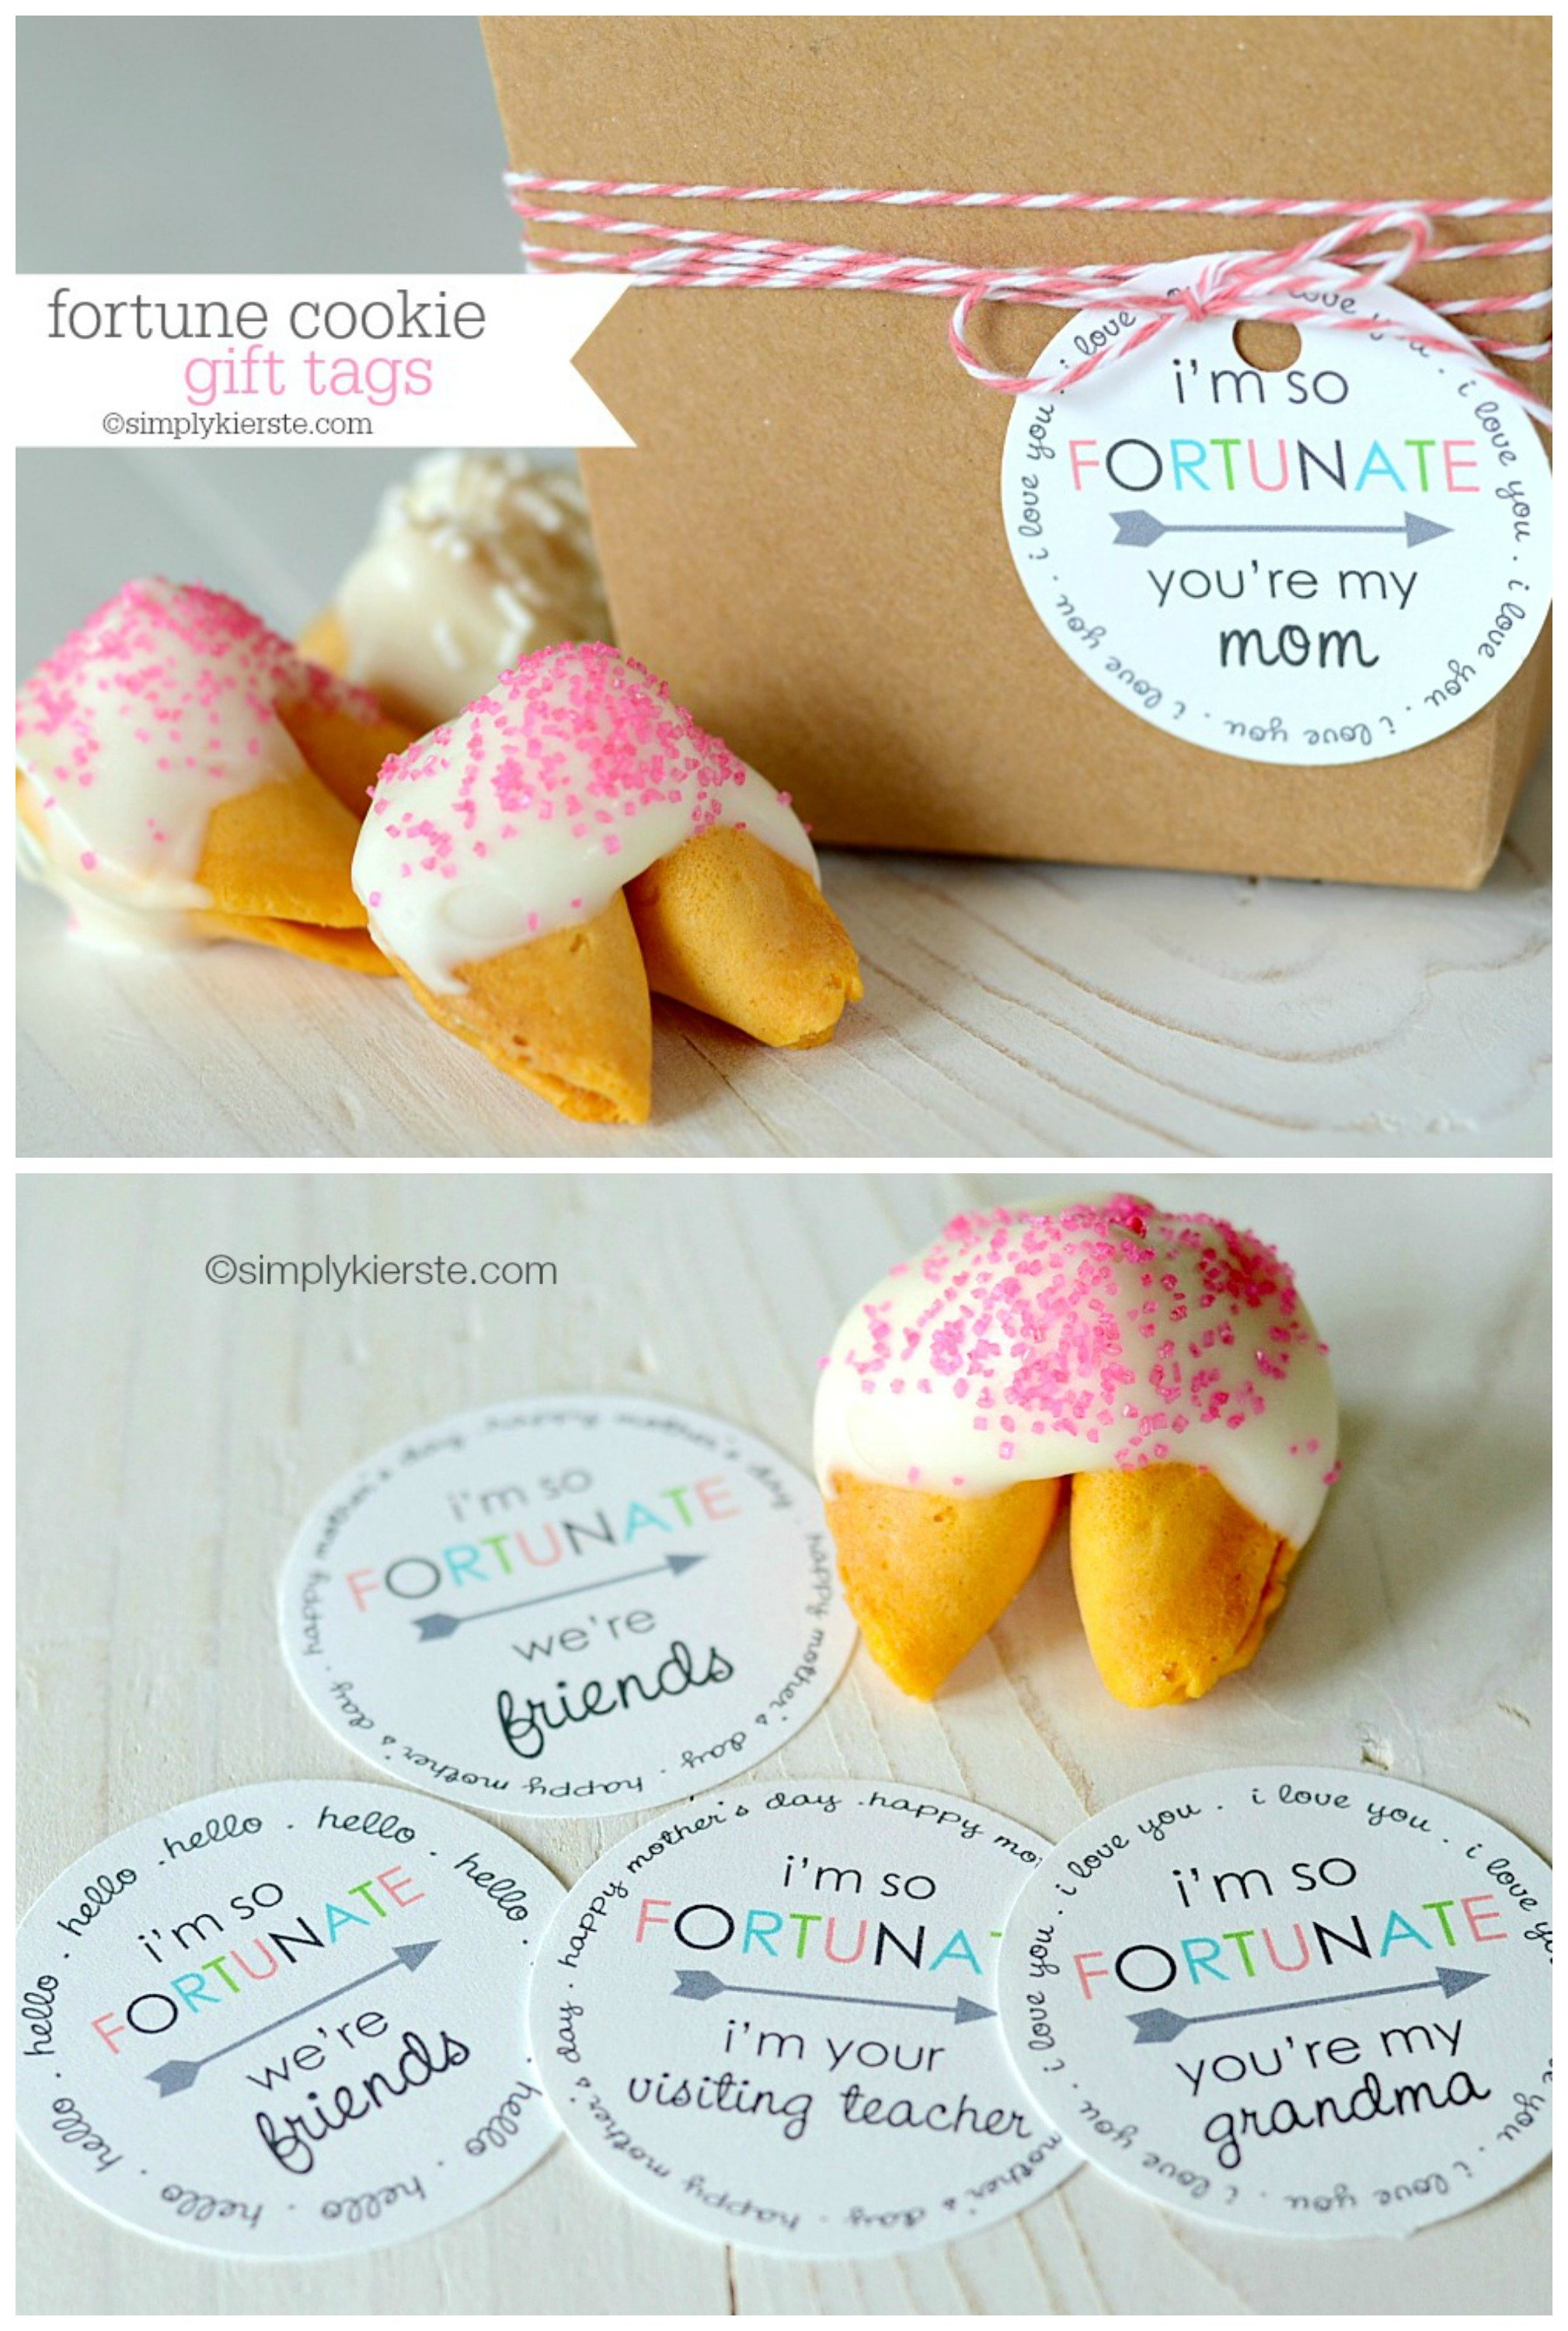 Fortune cookie gift tags simplykierste fortune cookie gift tags simplykierste negle Choice Image